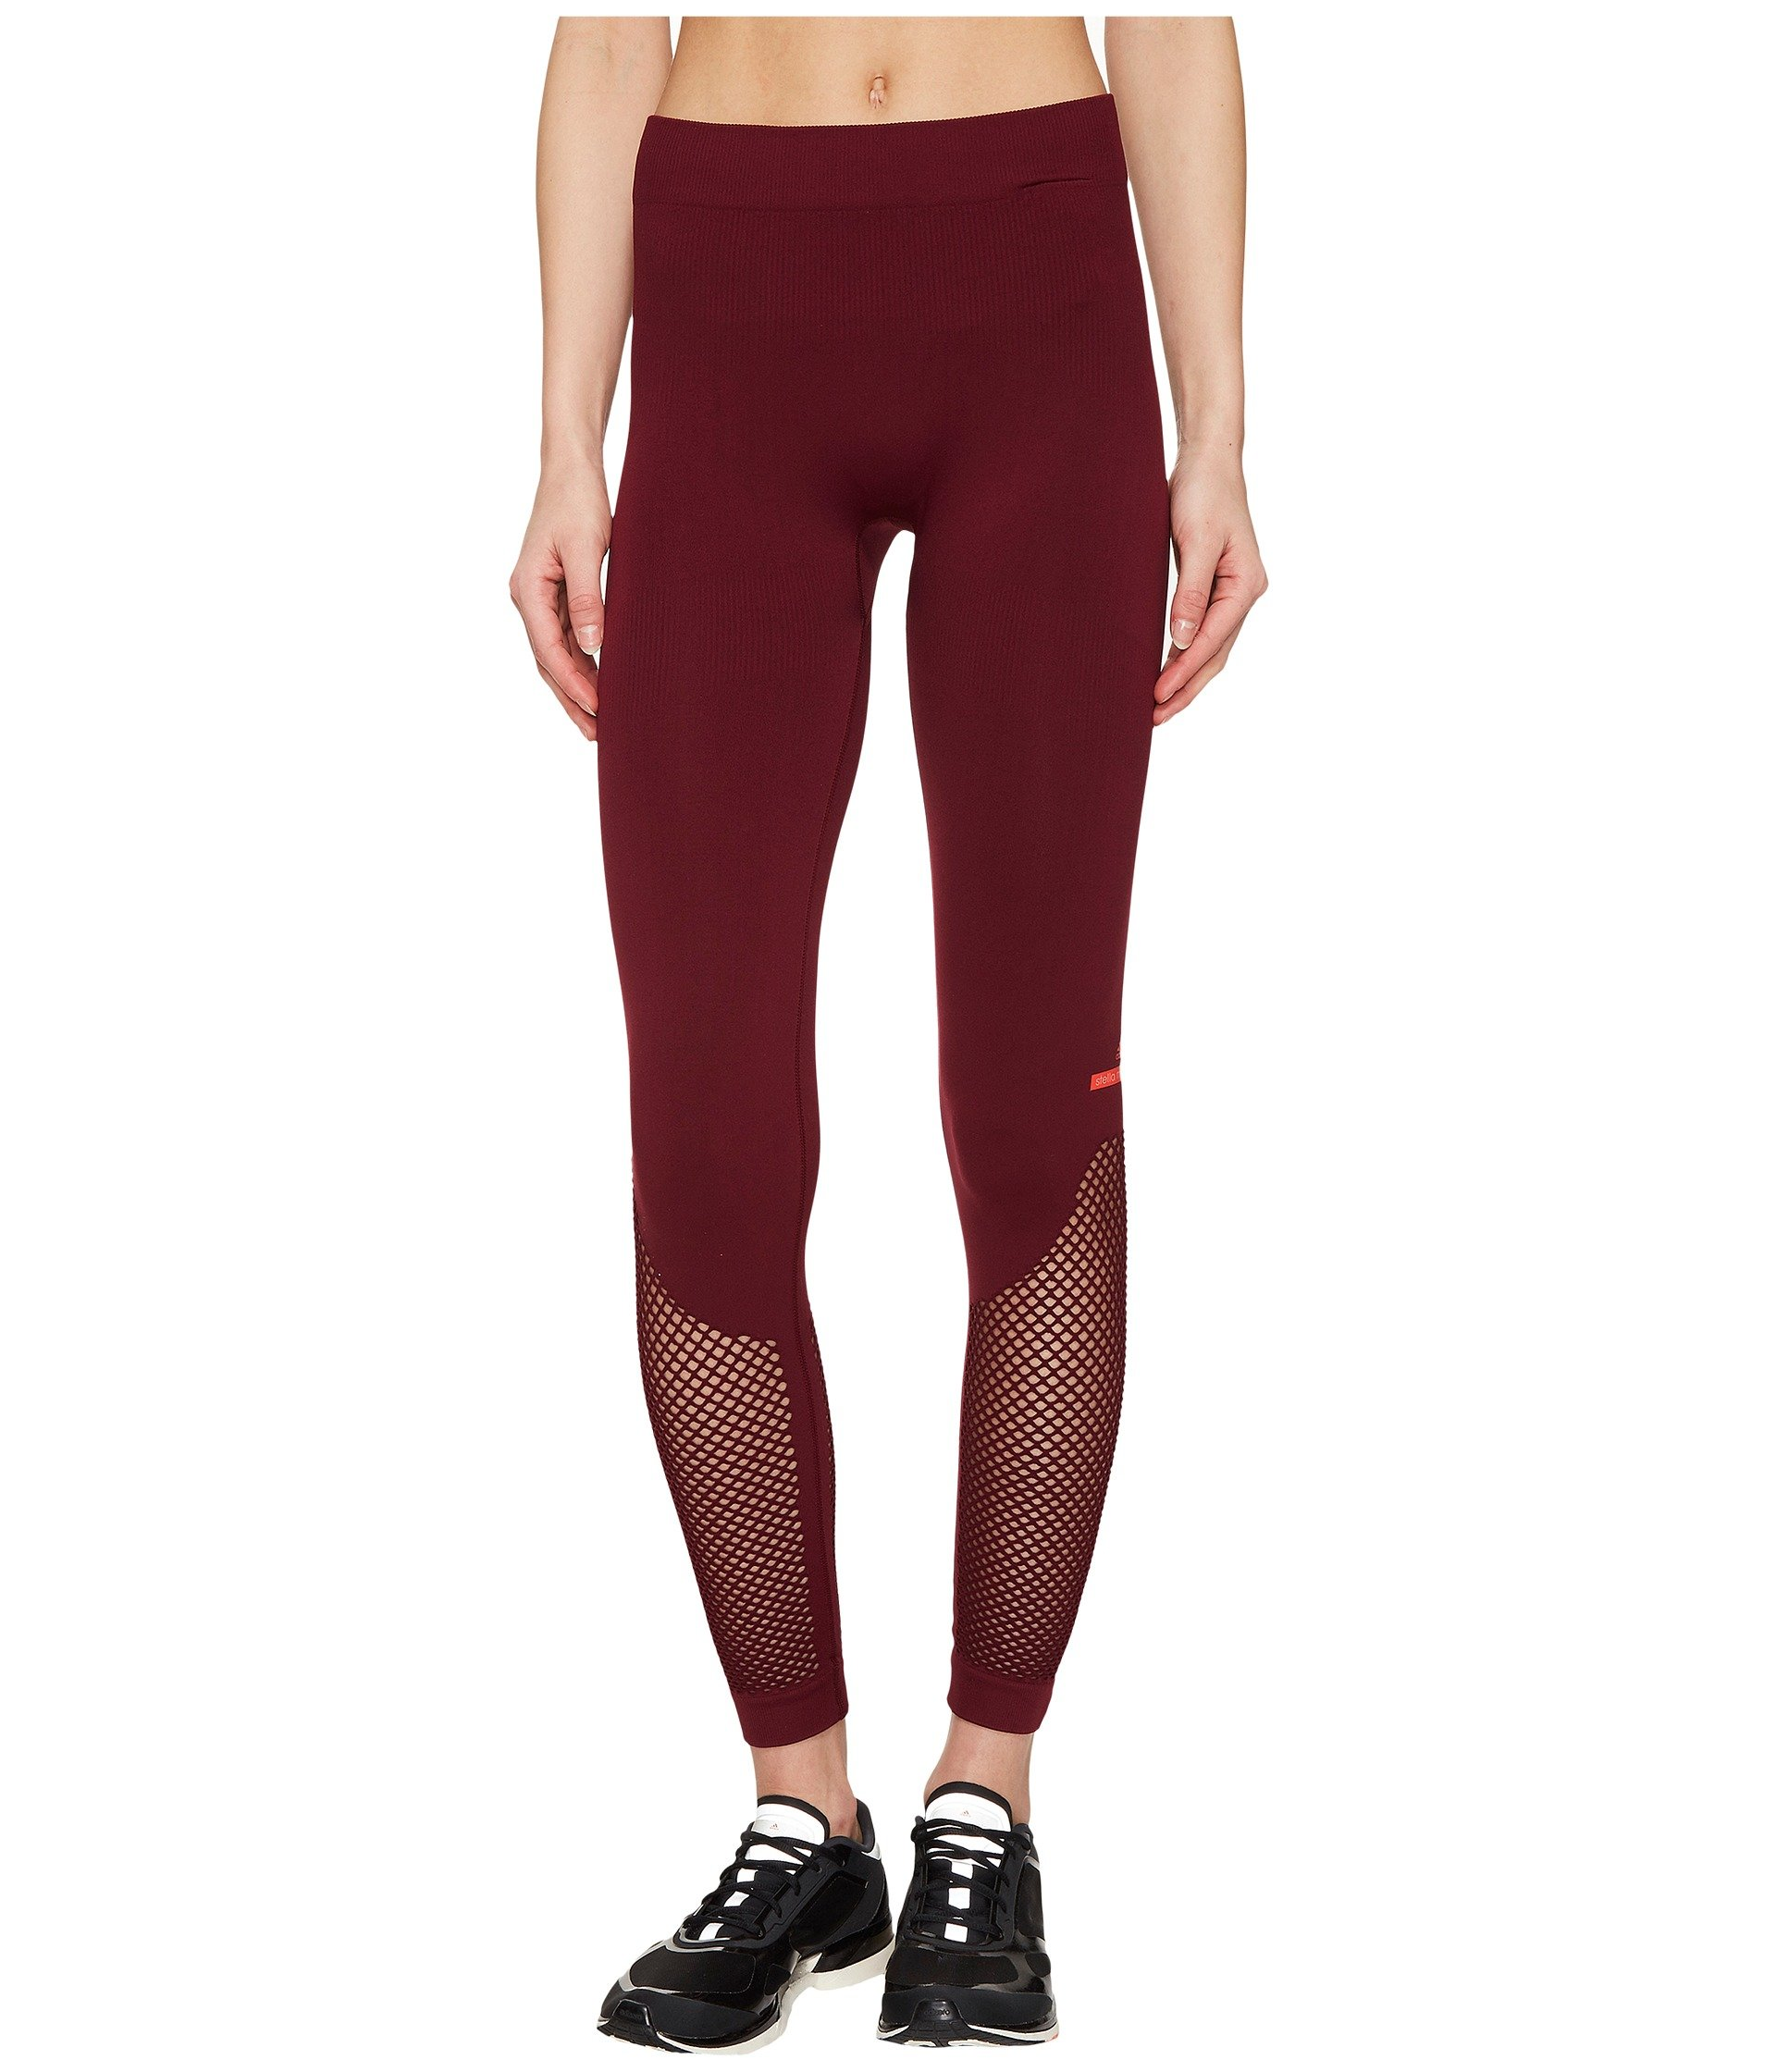 Adidas By Stella Mccartney The Seamless Mesh Tights Bq1028 In Cherry Wood 1e194ade8